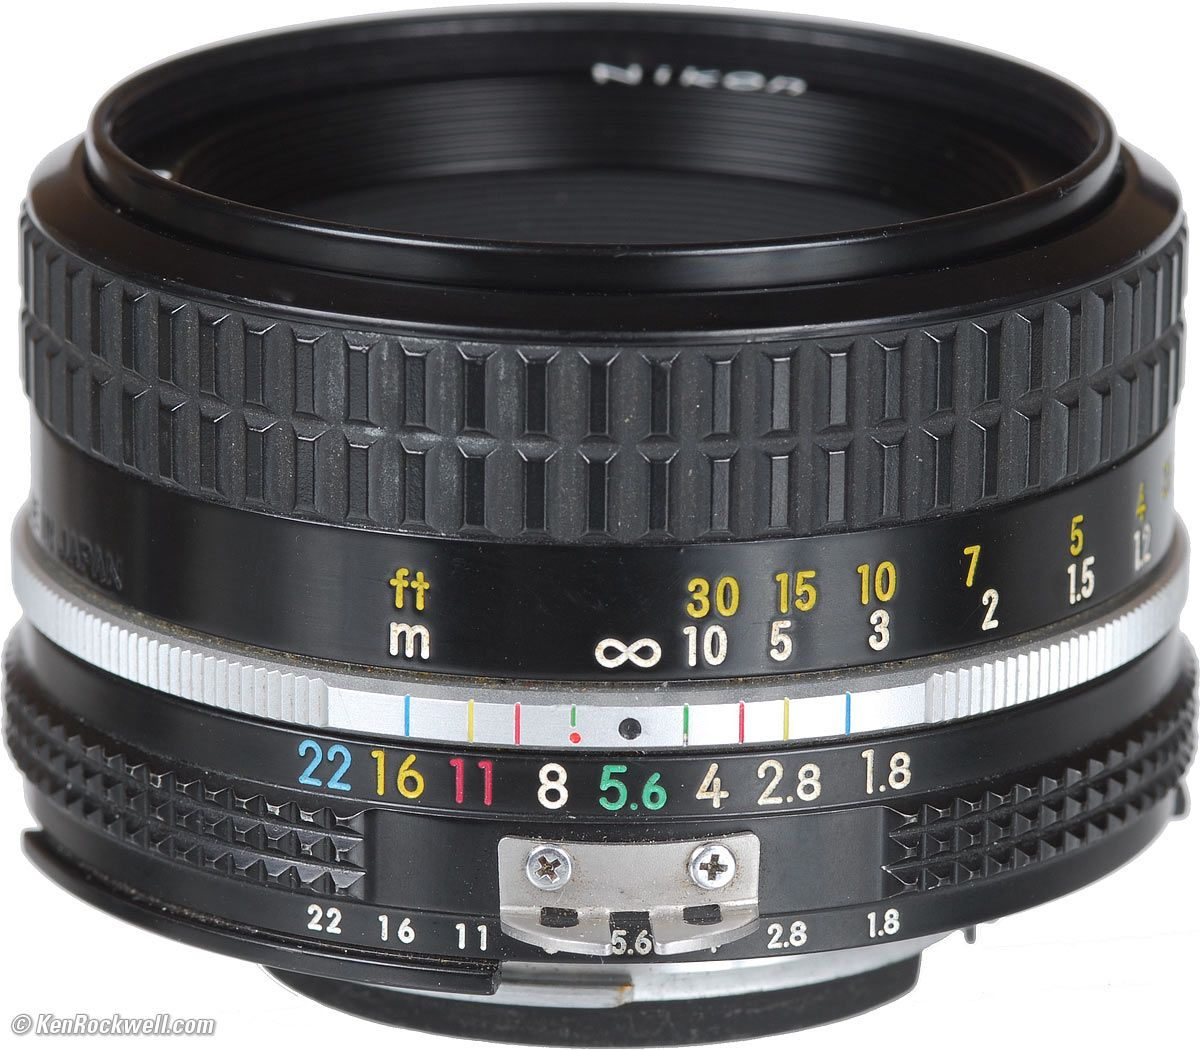 Nikon 50mm f/1.8 AI. Will be replacing my new AF-D with this AI or the early (long nose) AI-S soon. Same optical formula, but so much more solid and smooth than the current plastic body models.